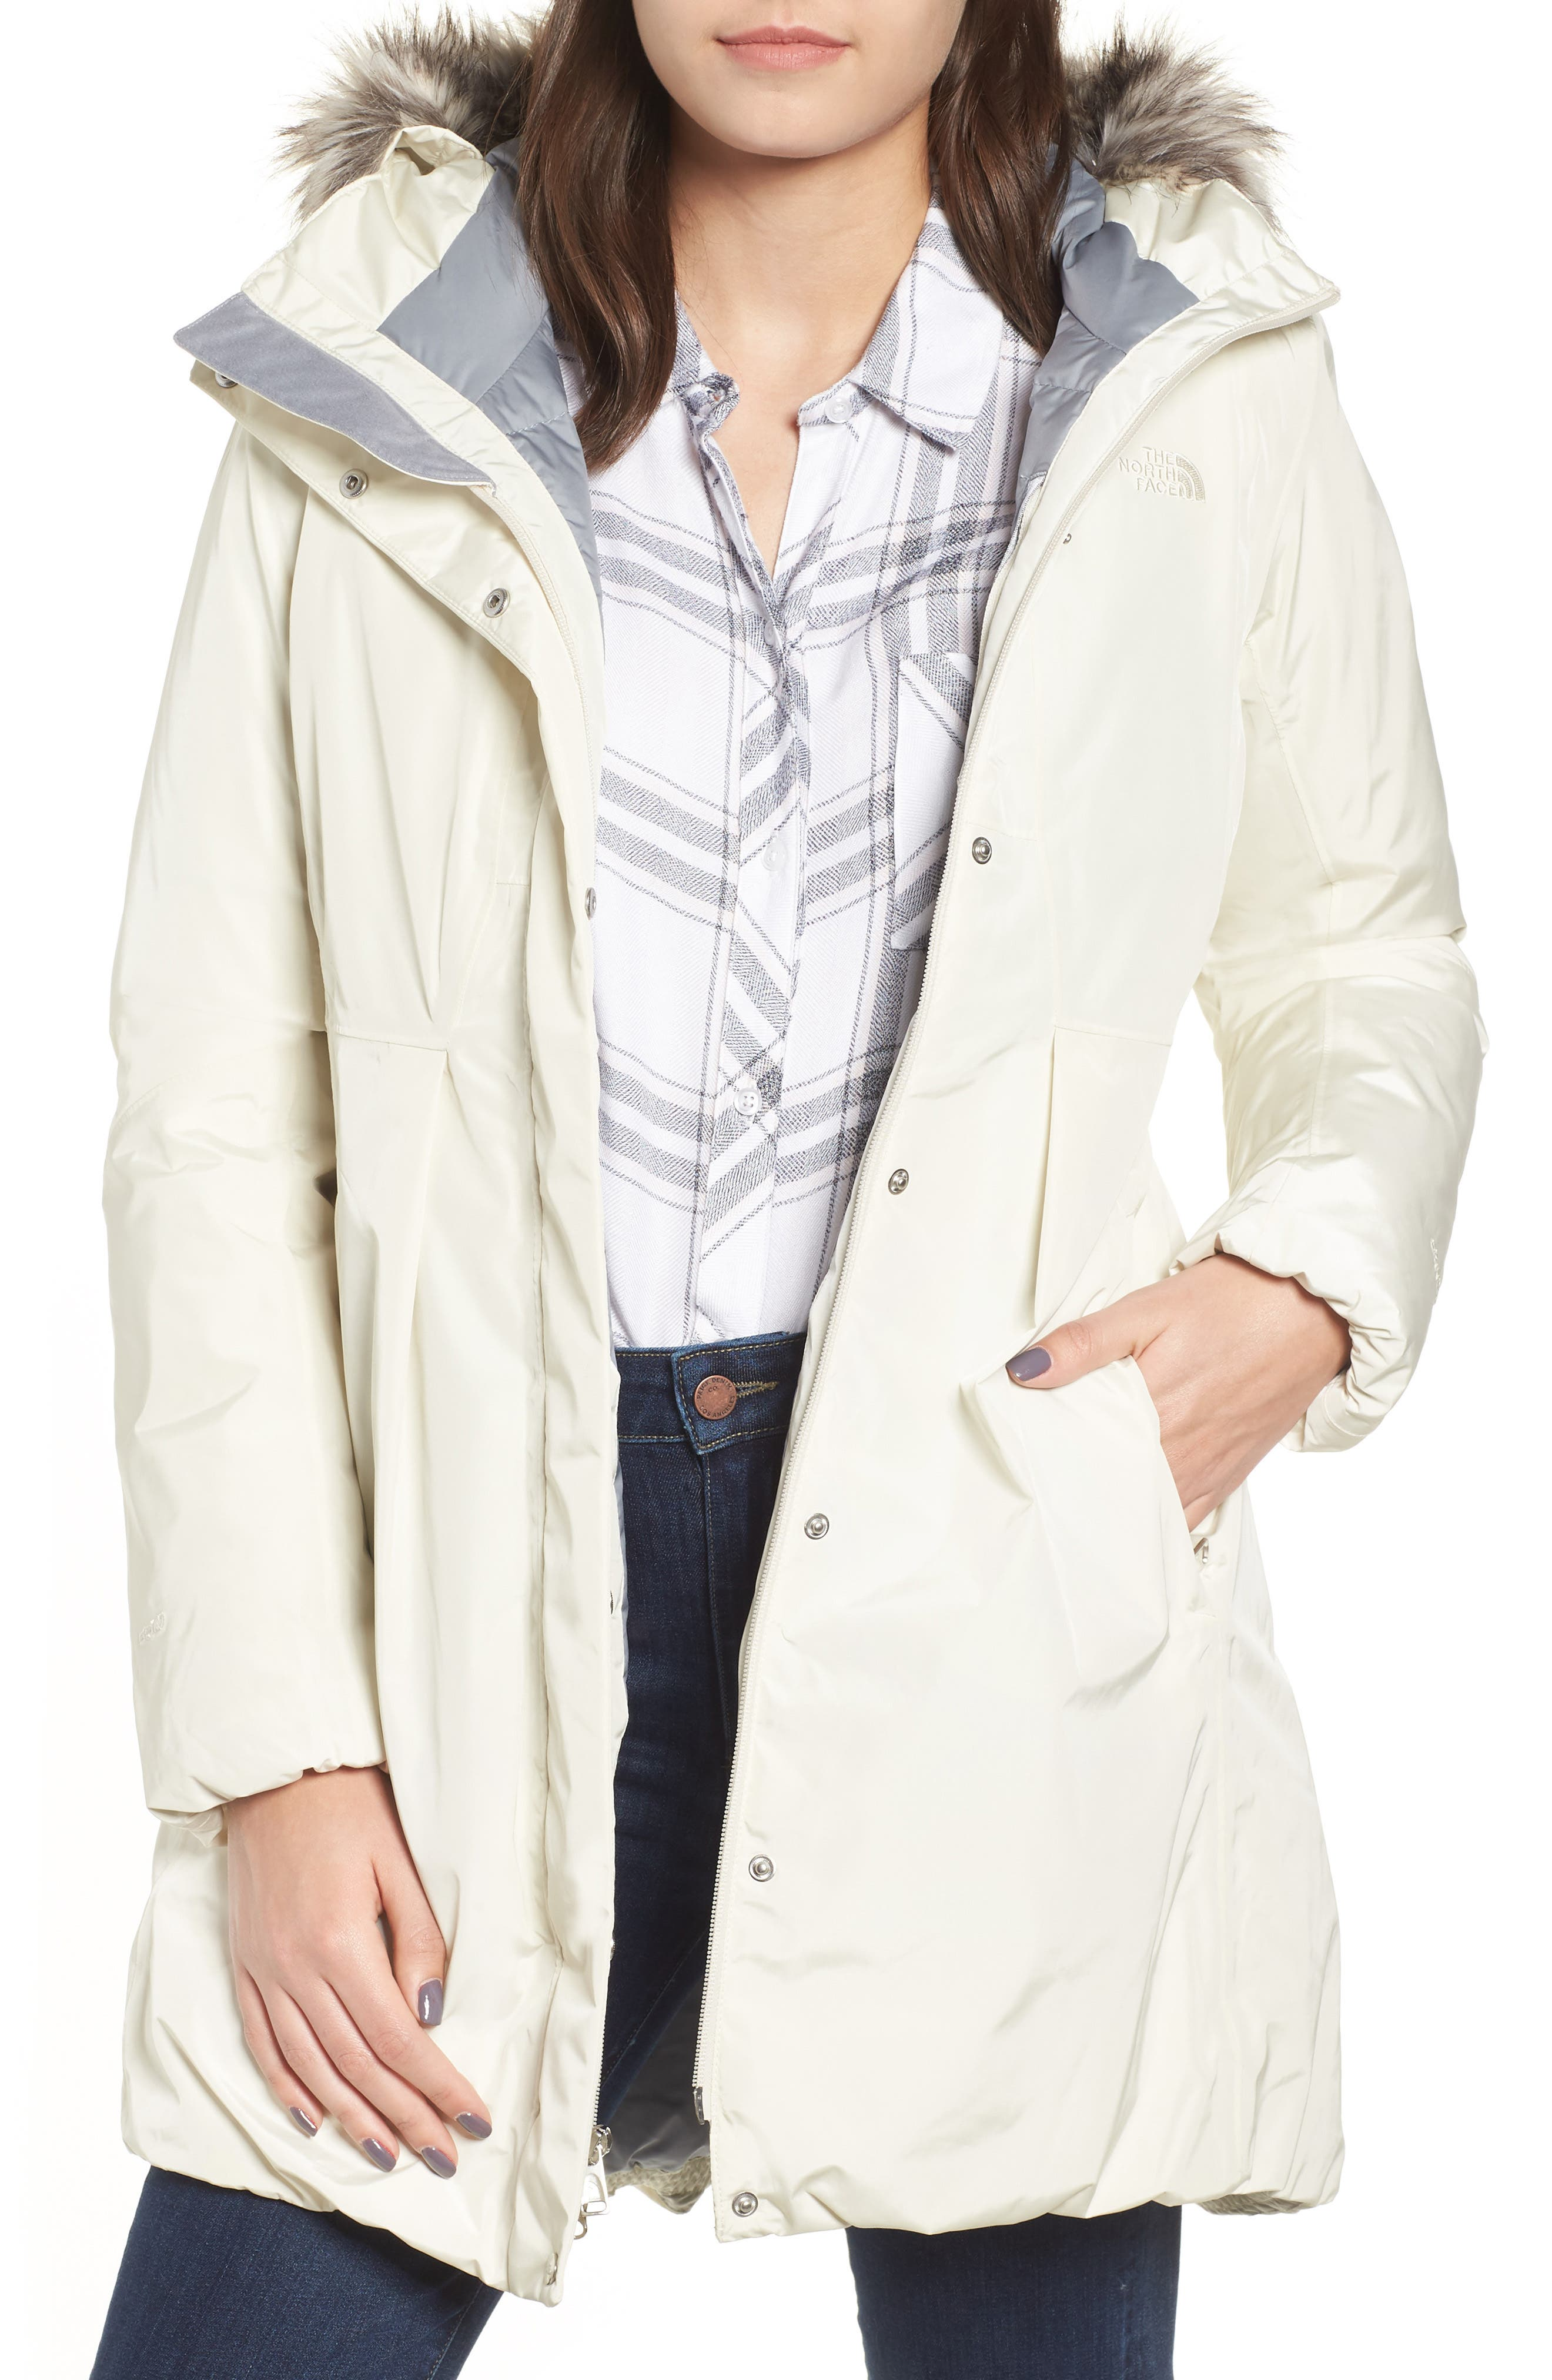 Nordstrom Women's amp; White Jackets Coats rEqBHUIwr